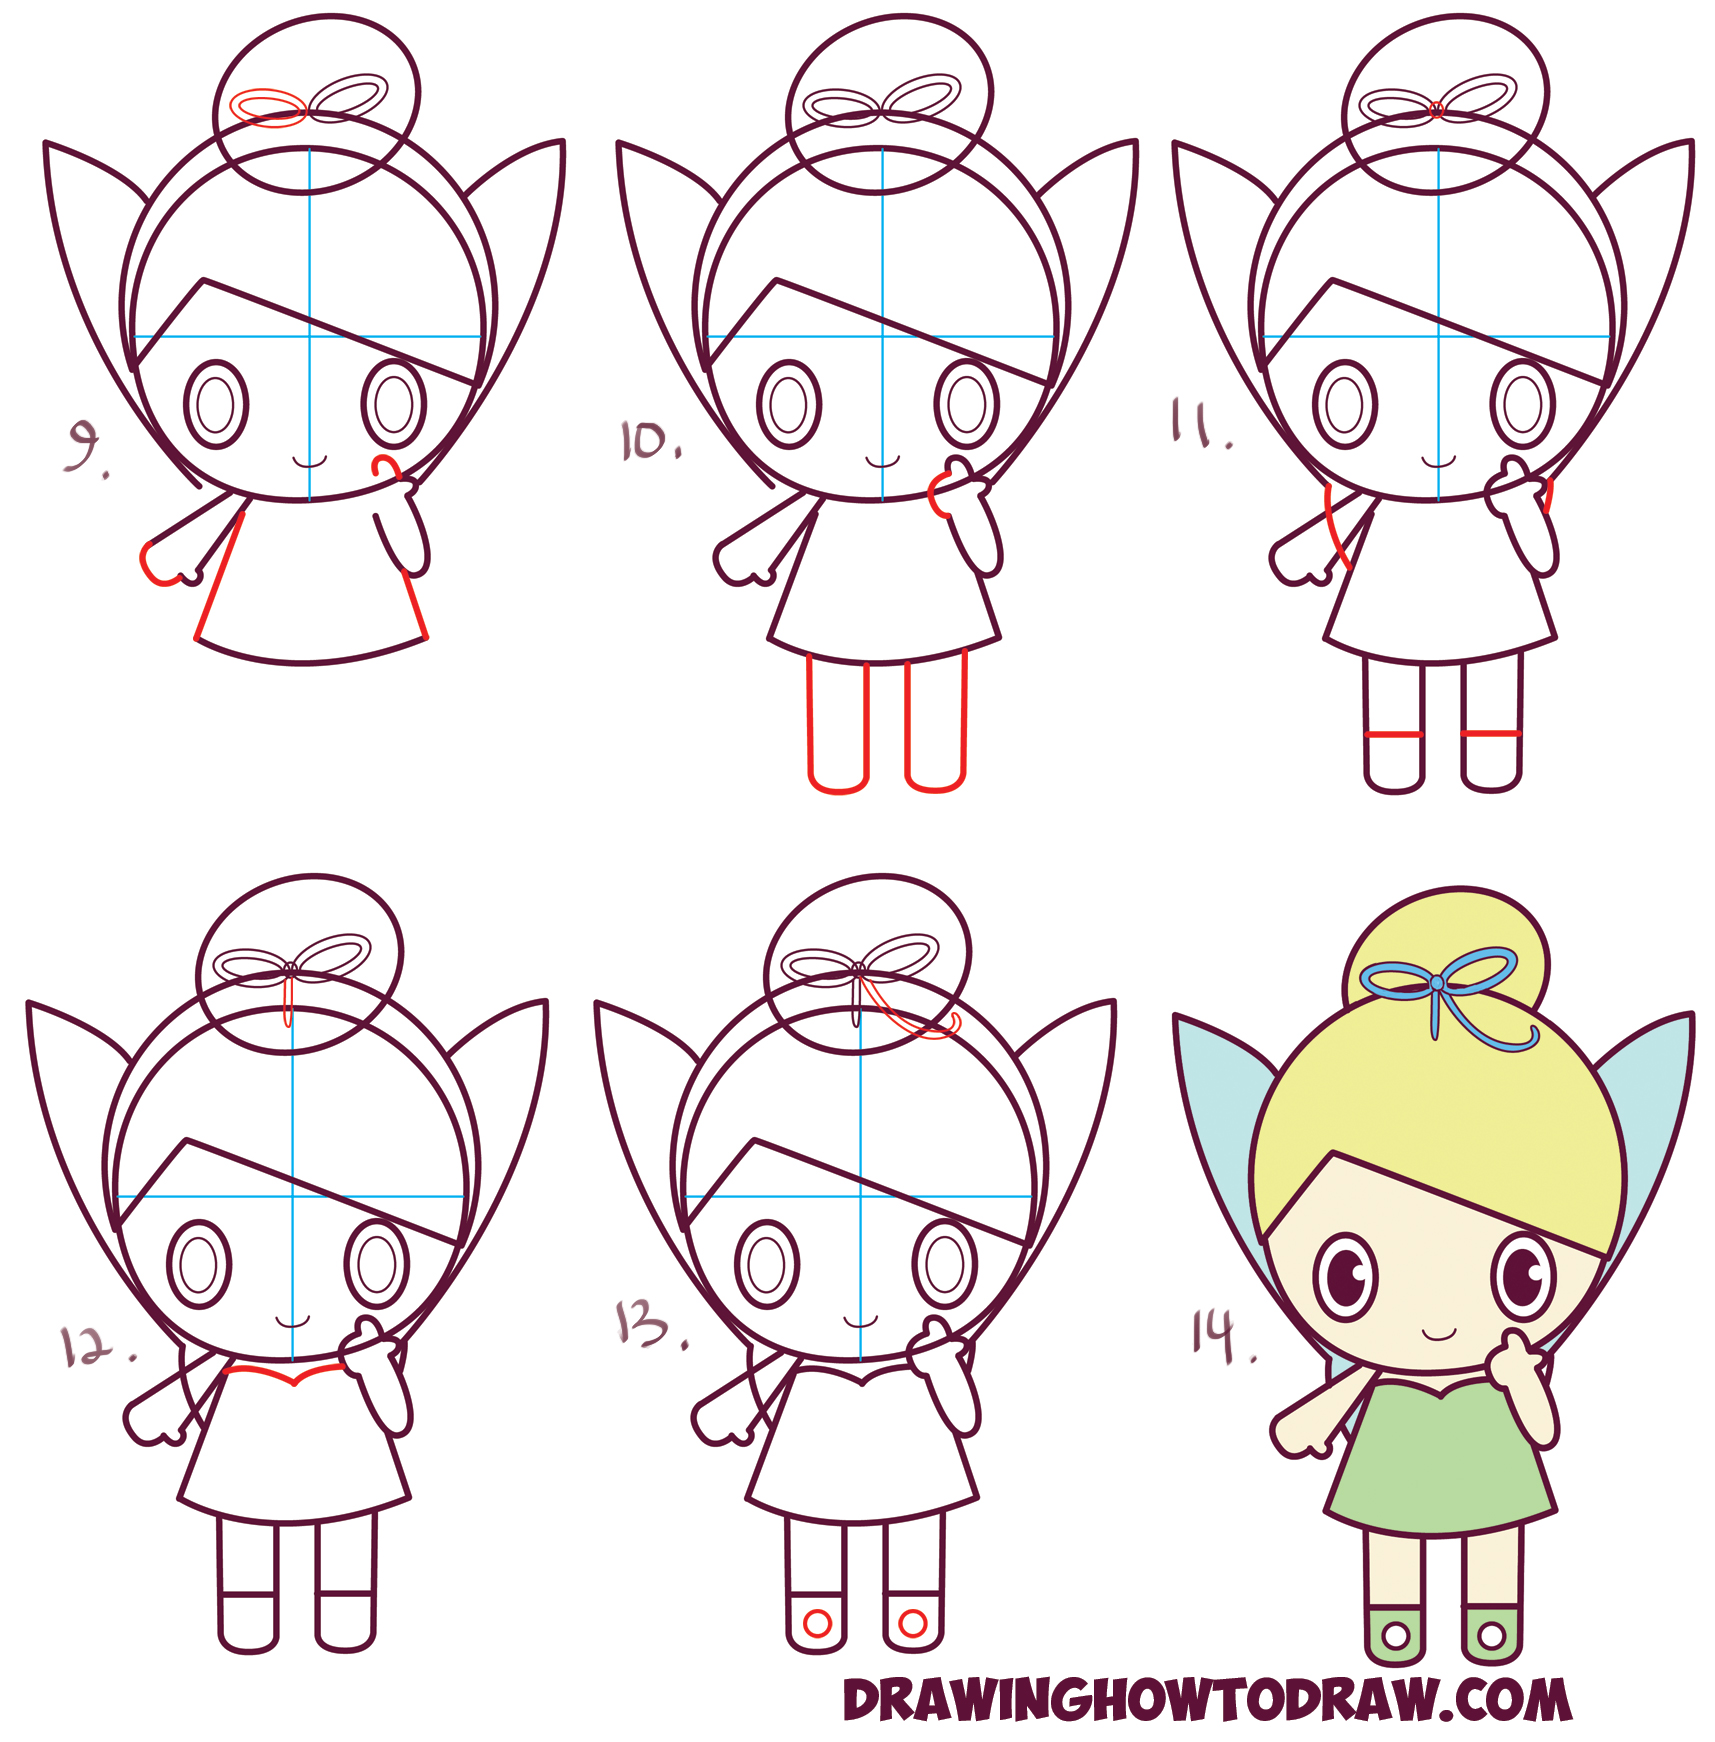 Uncategorized Easy To Draw Tinkerbell how to draw chibi tinkerbell the disney fairy in easy step by learn cute baby ish kawaii style tinkerbell